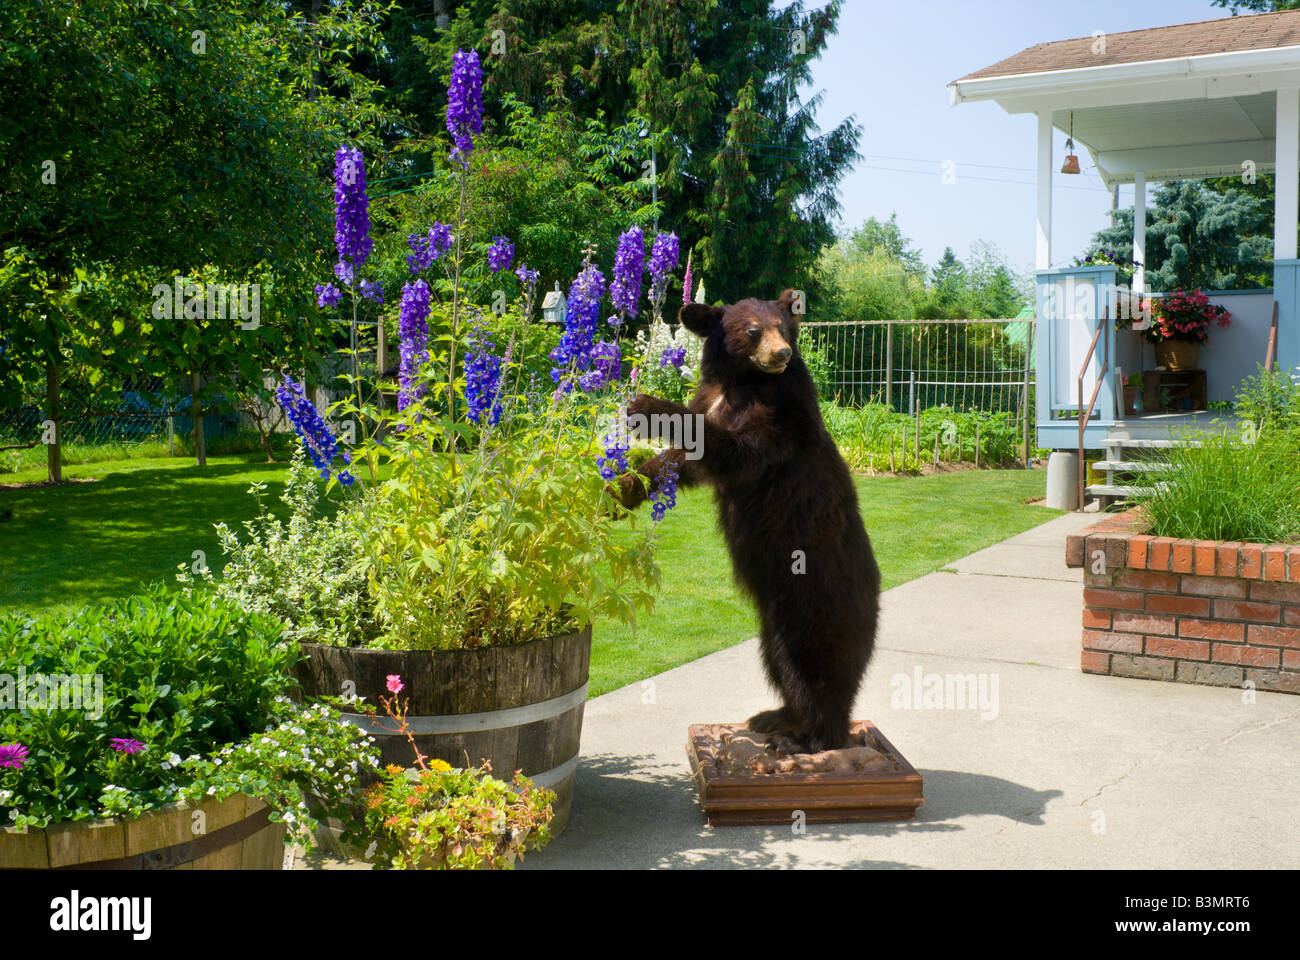 A stuffed cinnamon colored black bear trophy Ursus americanus stands in a residential backyard - Stock Image